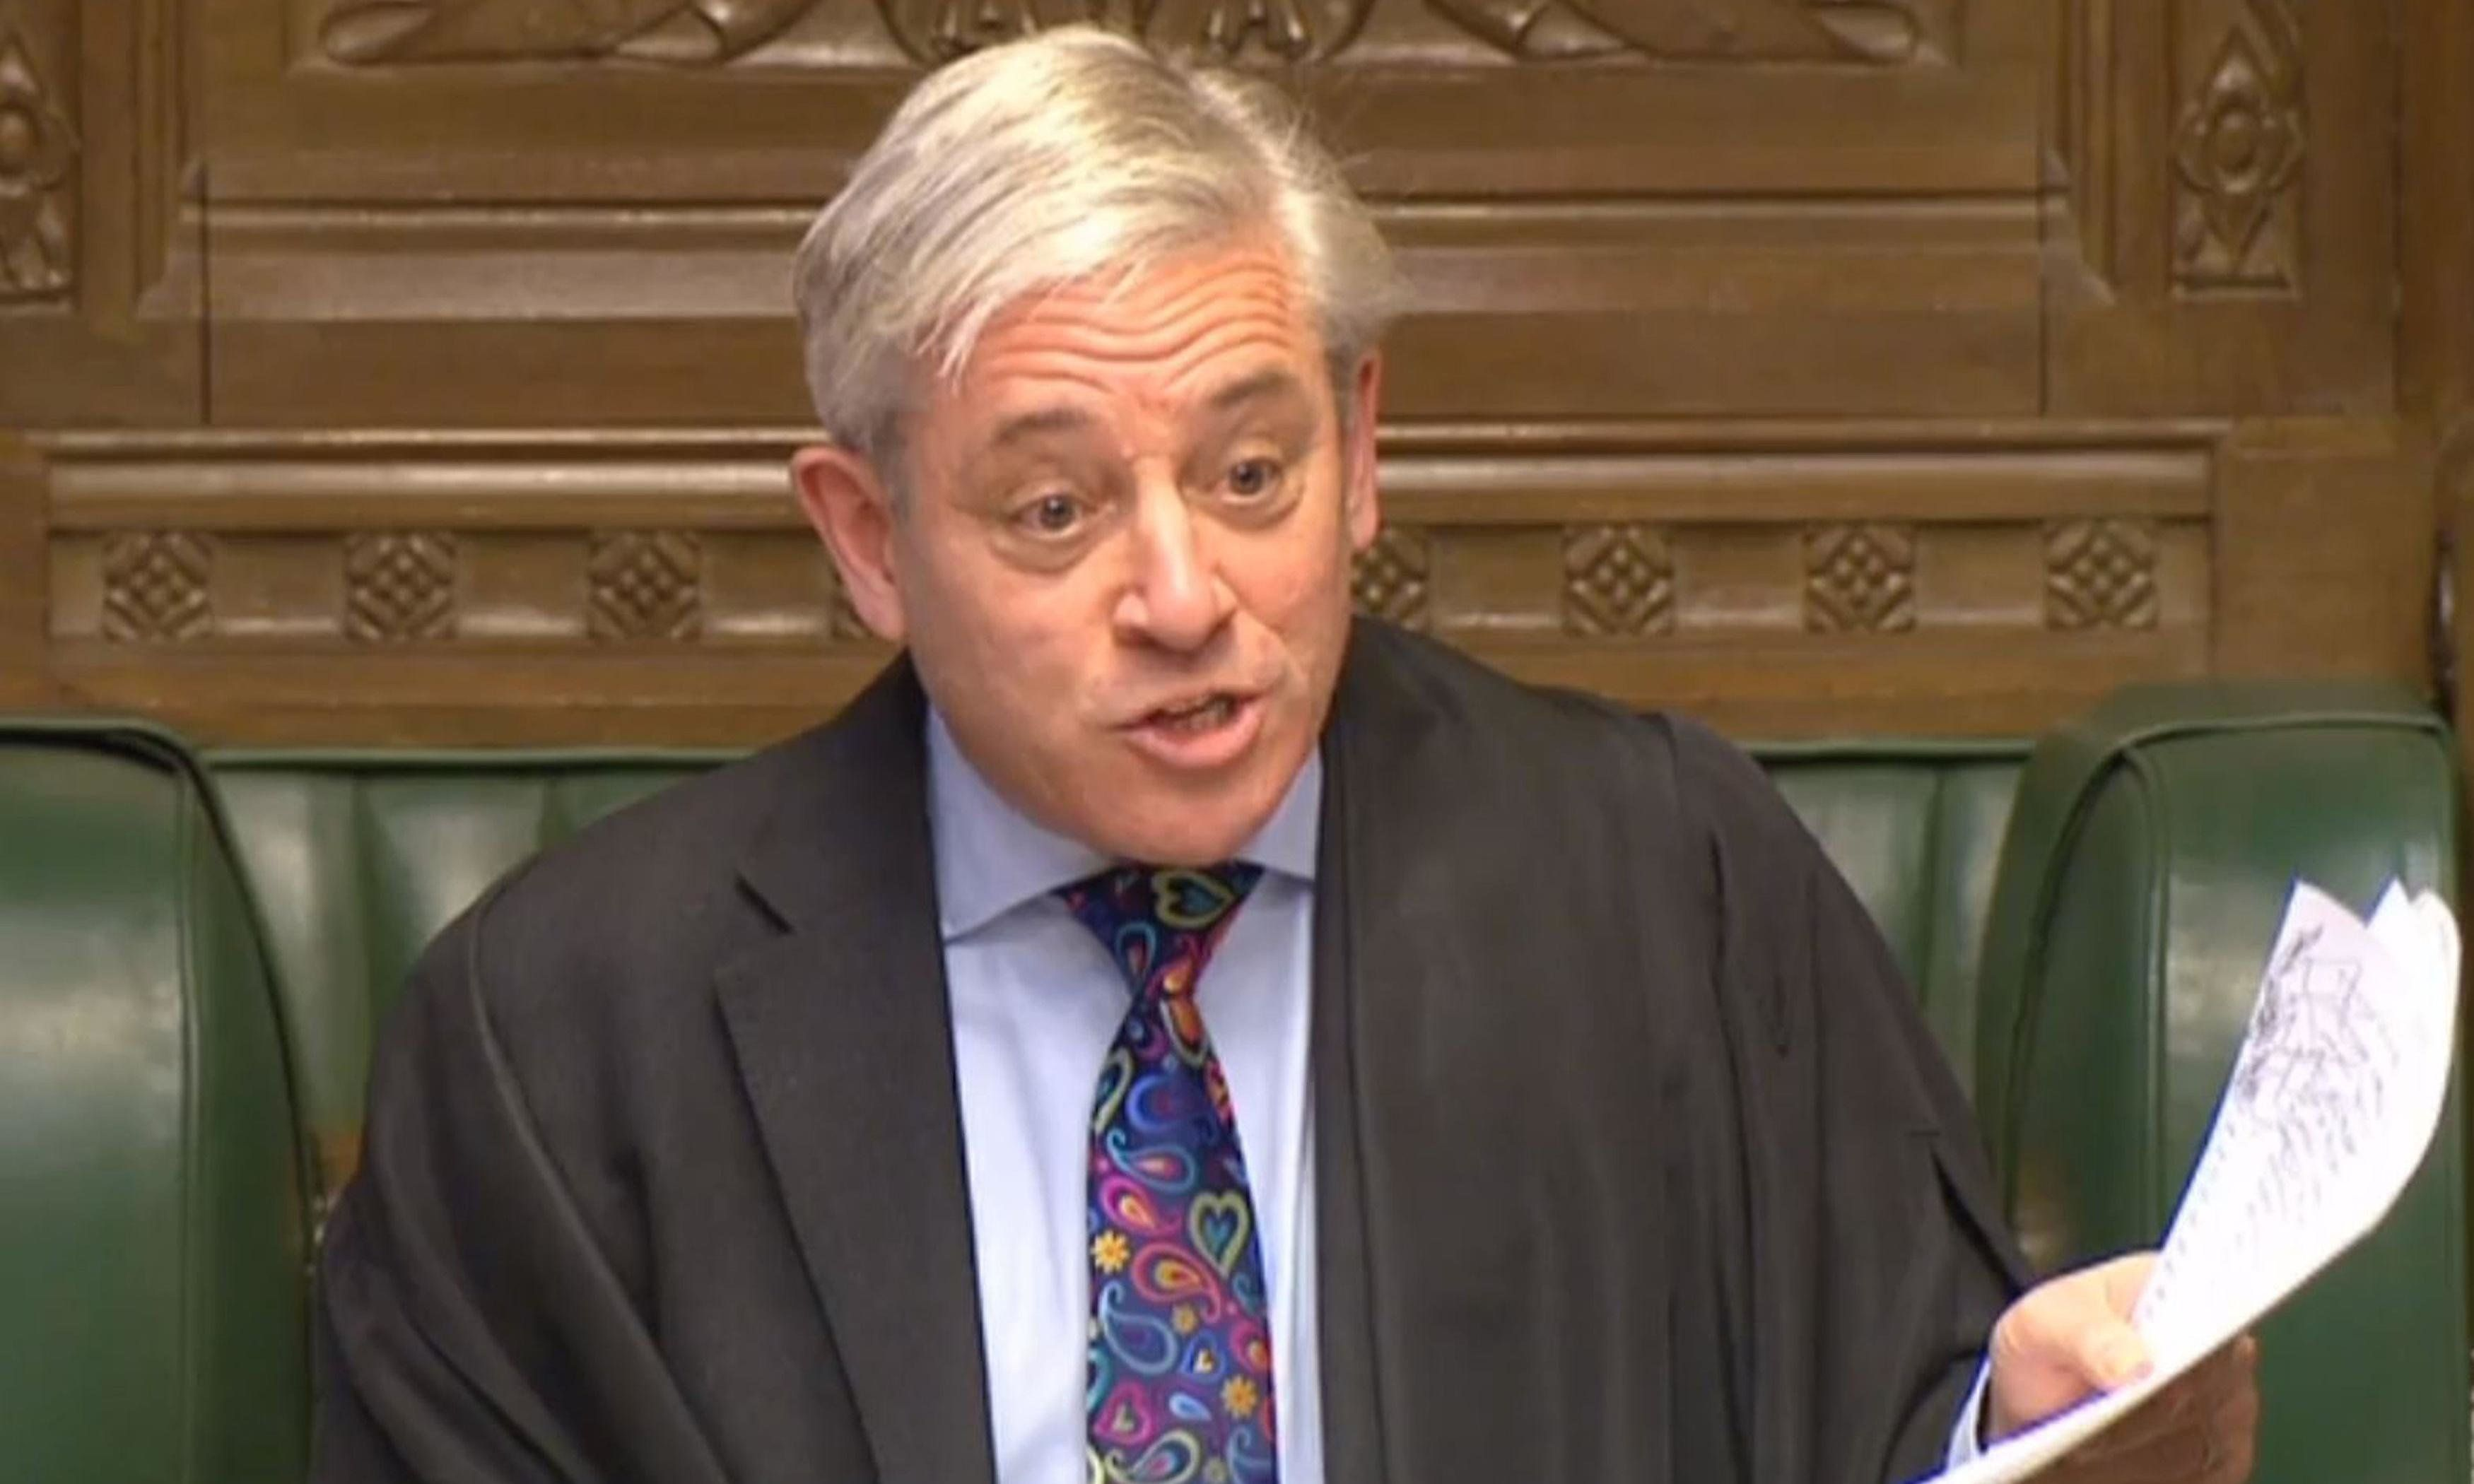 John Bercow faces down calls to resign over bullying claims class=